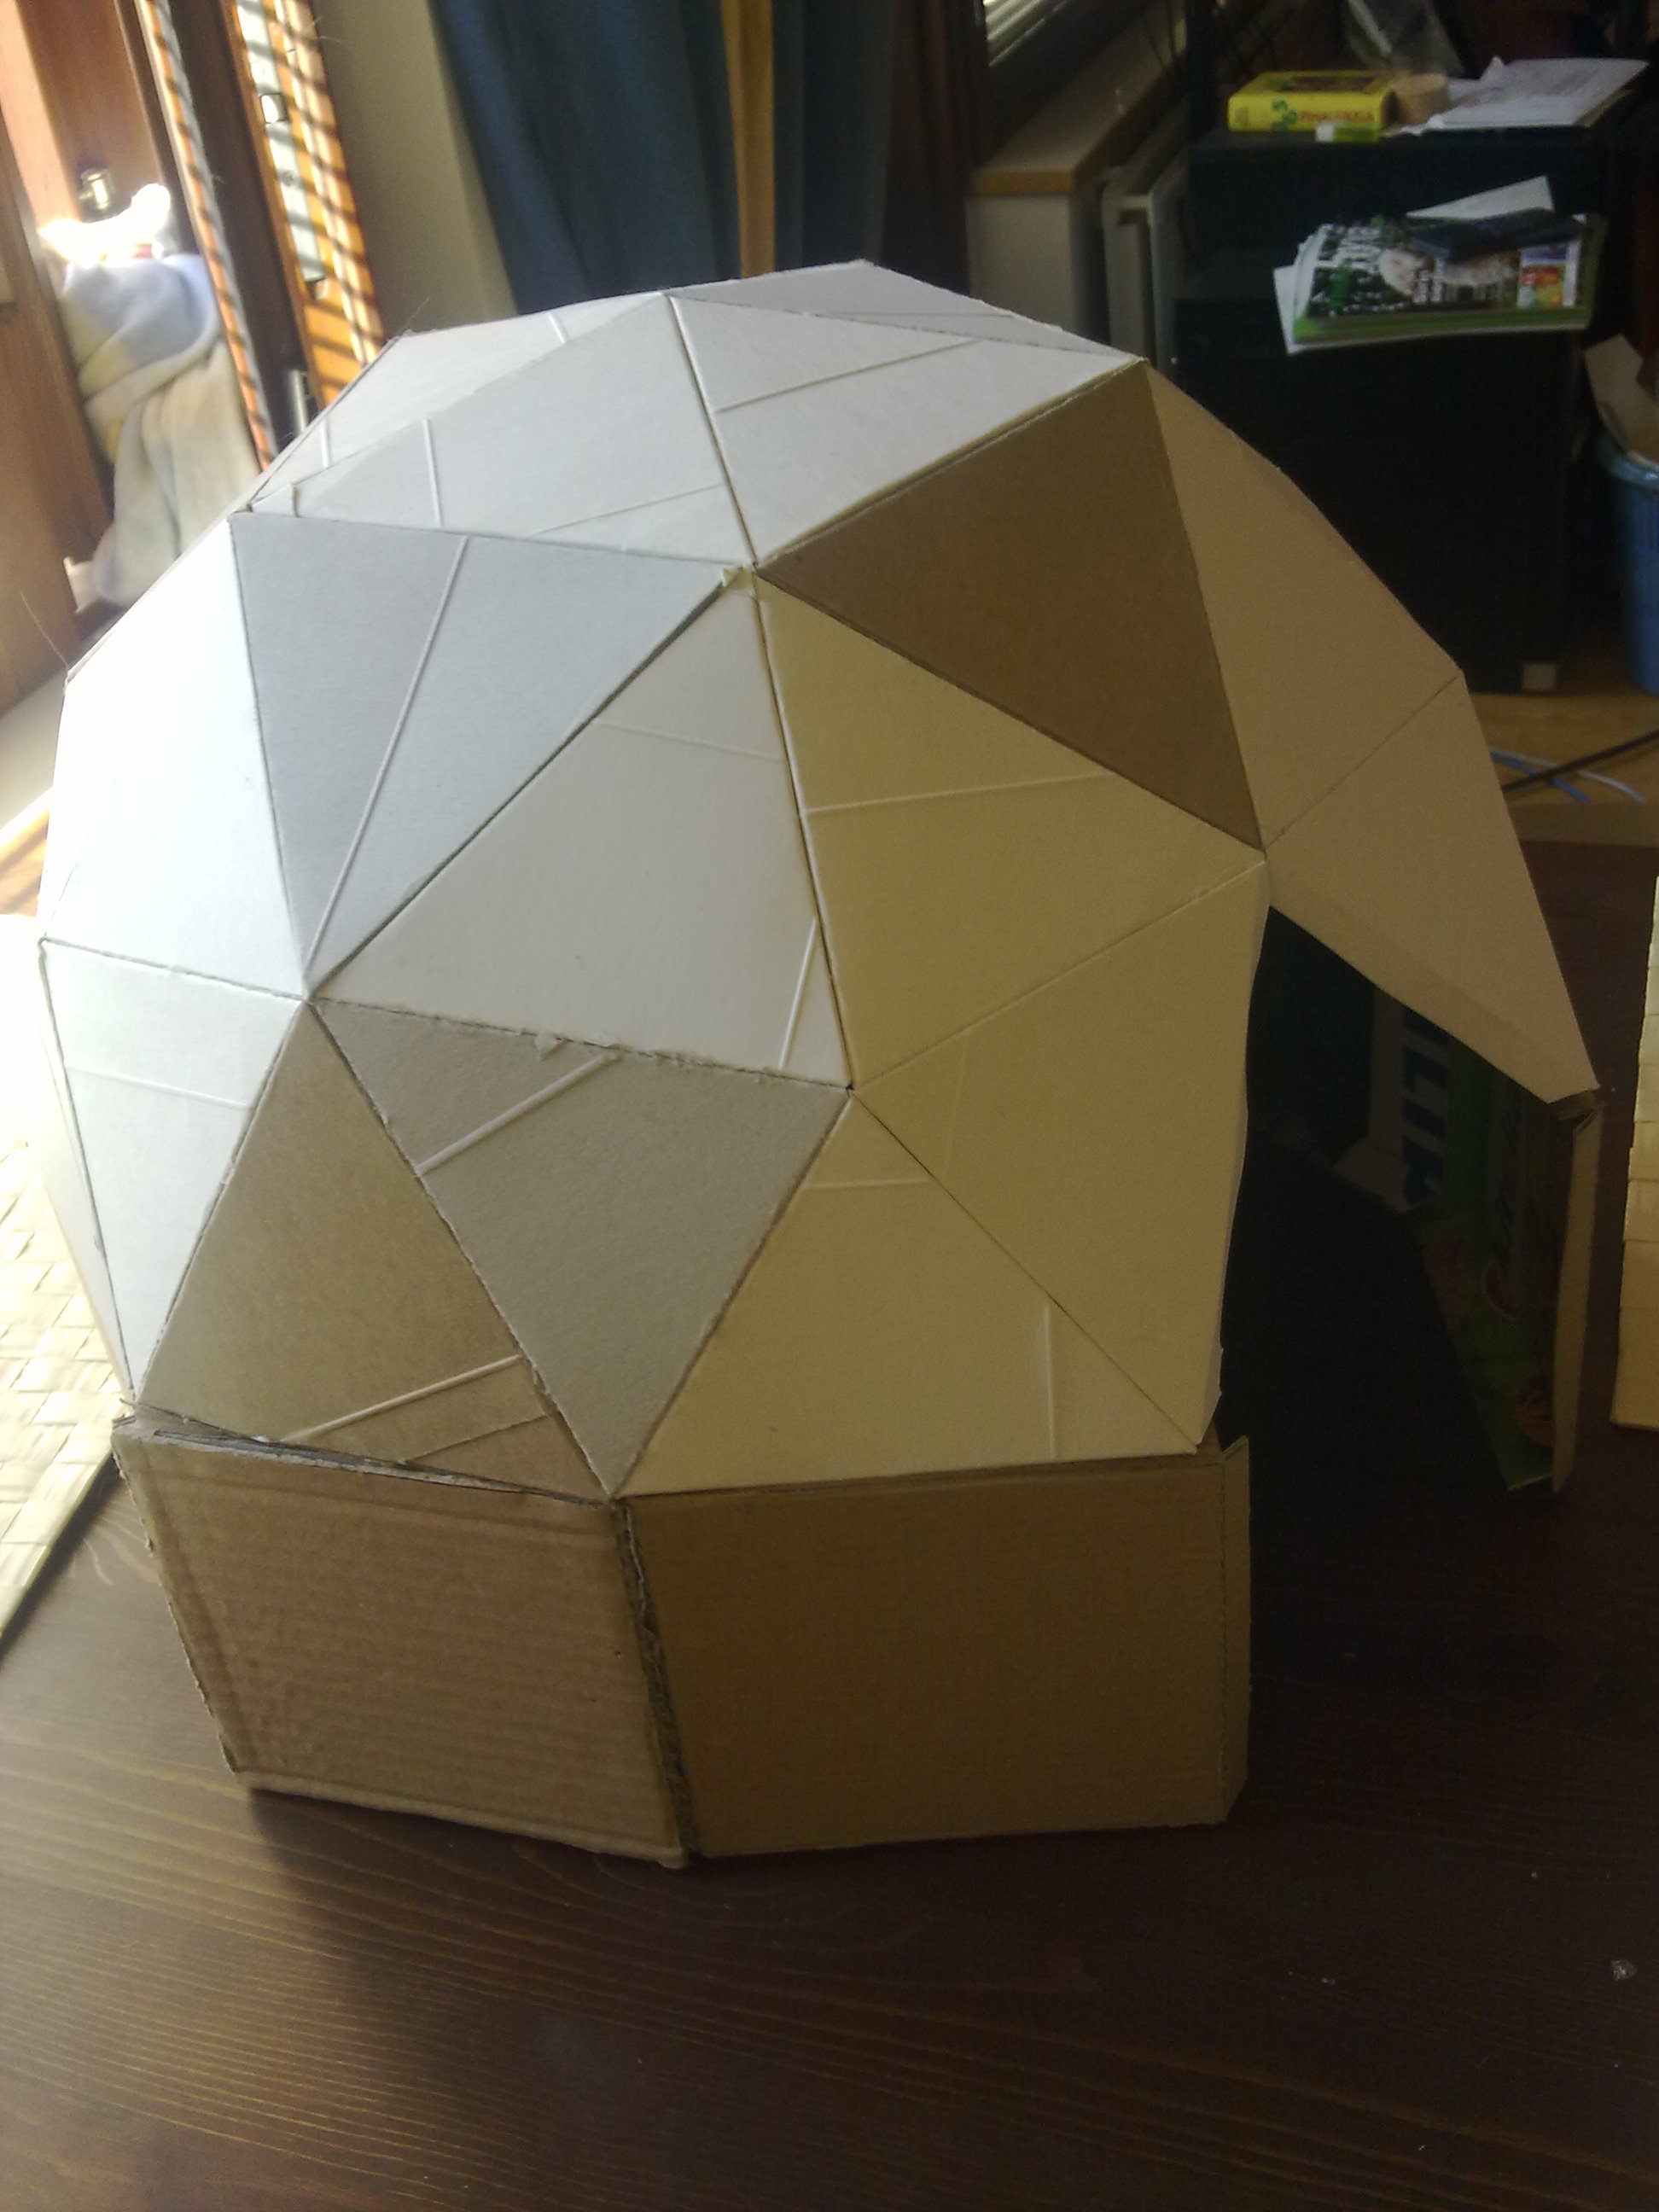 Picture of Cat-sized Cardboard Dome